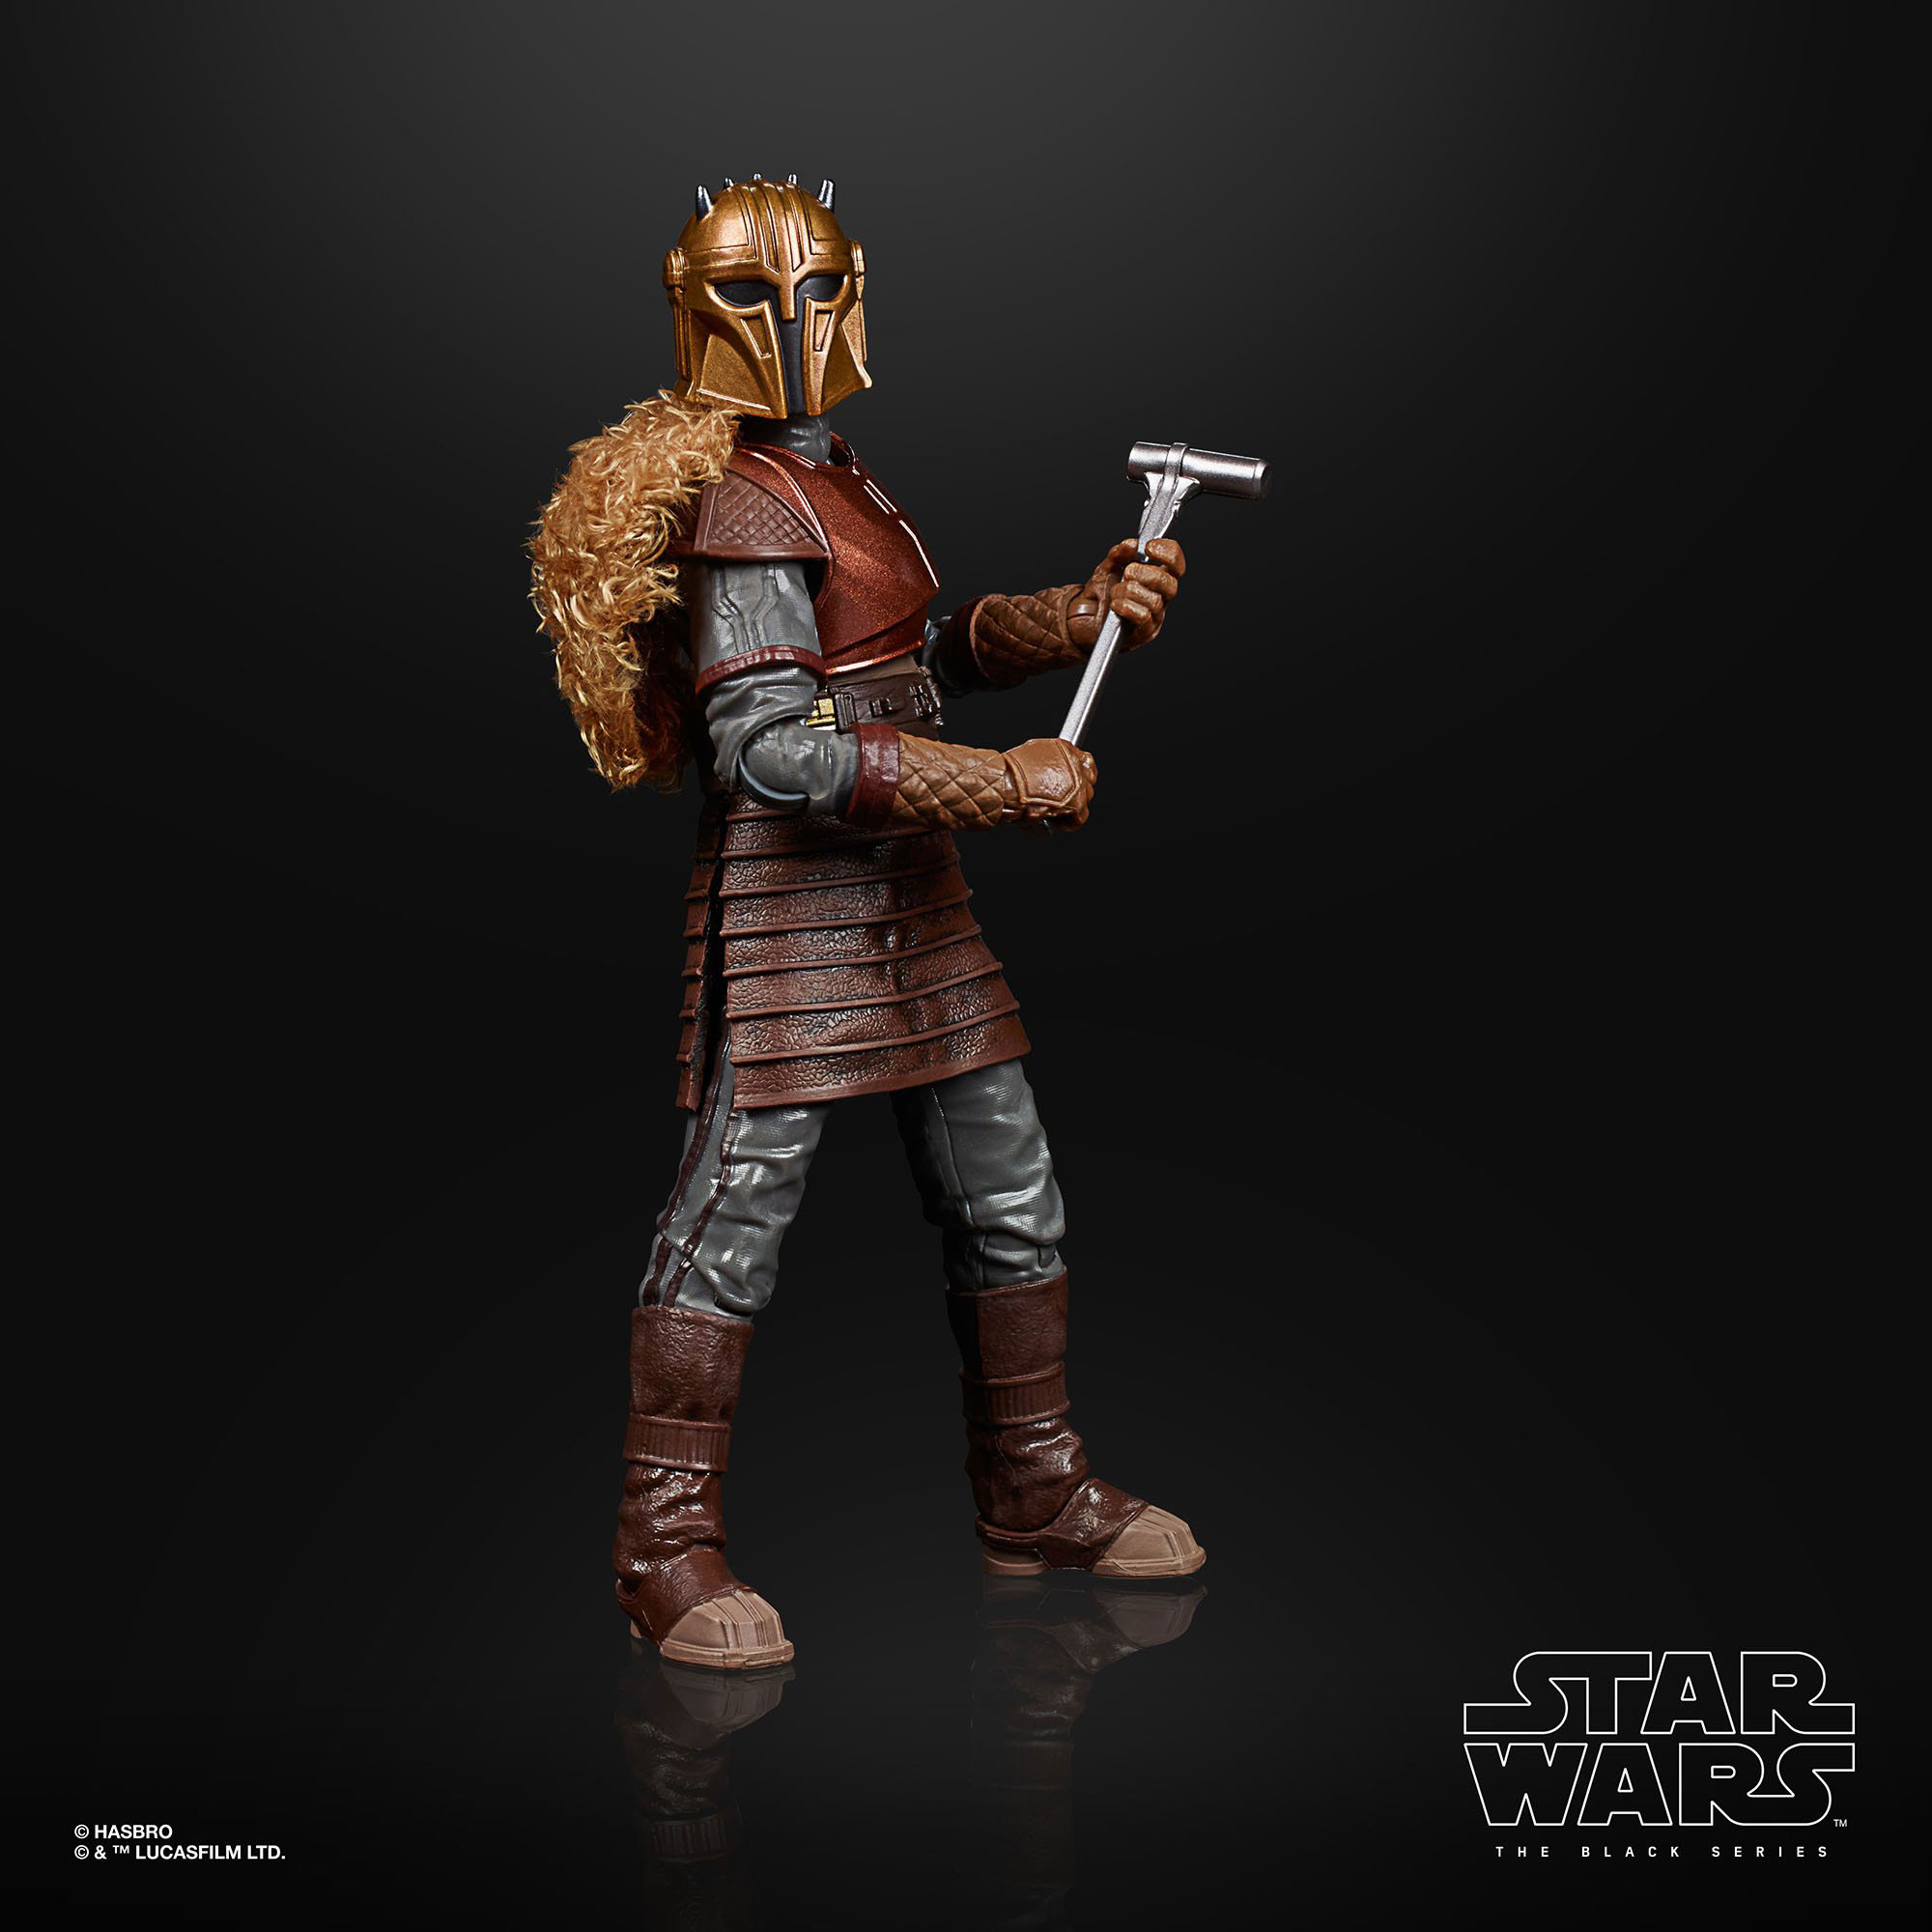 star-wars-black-series-the-armorer-mandalorian-action-figure-3